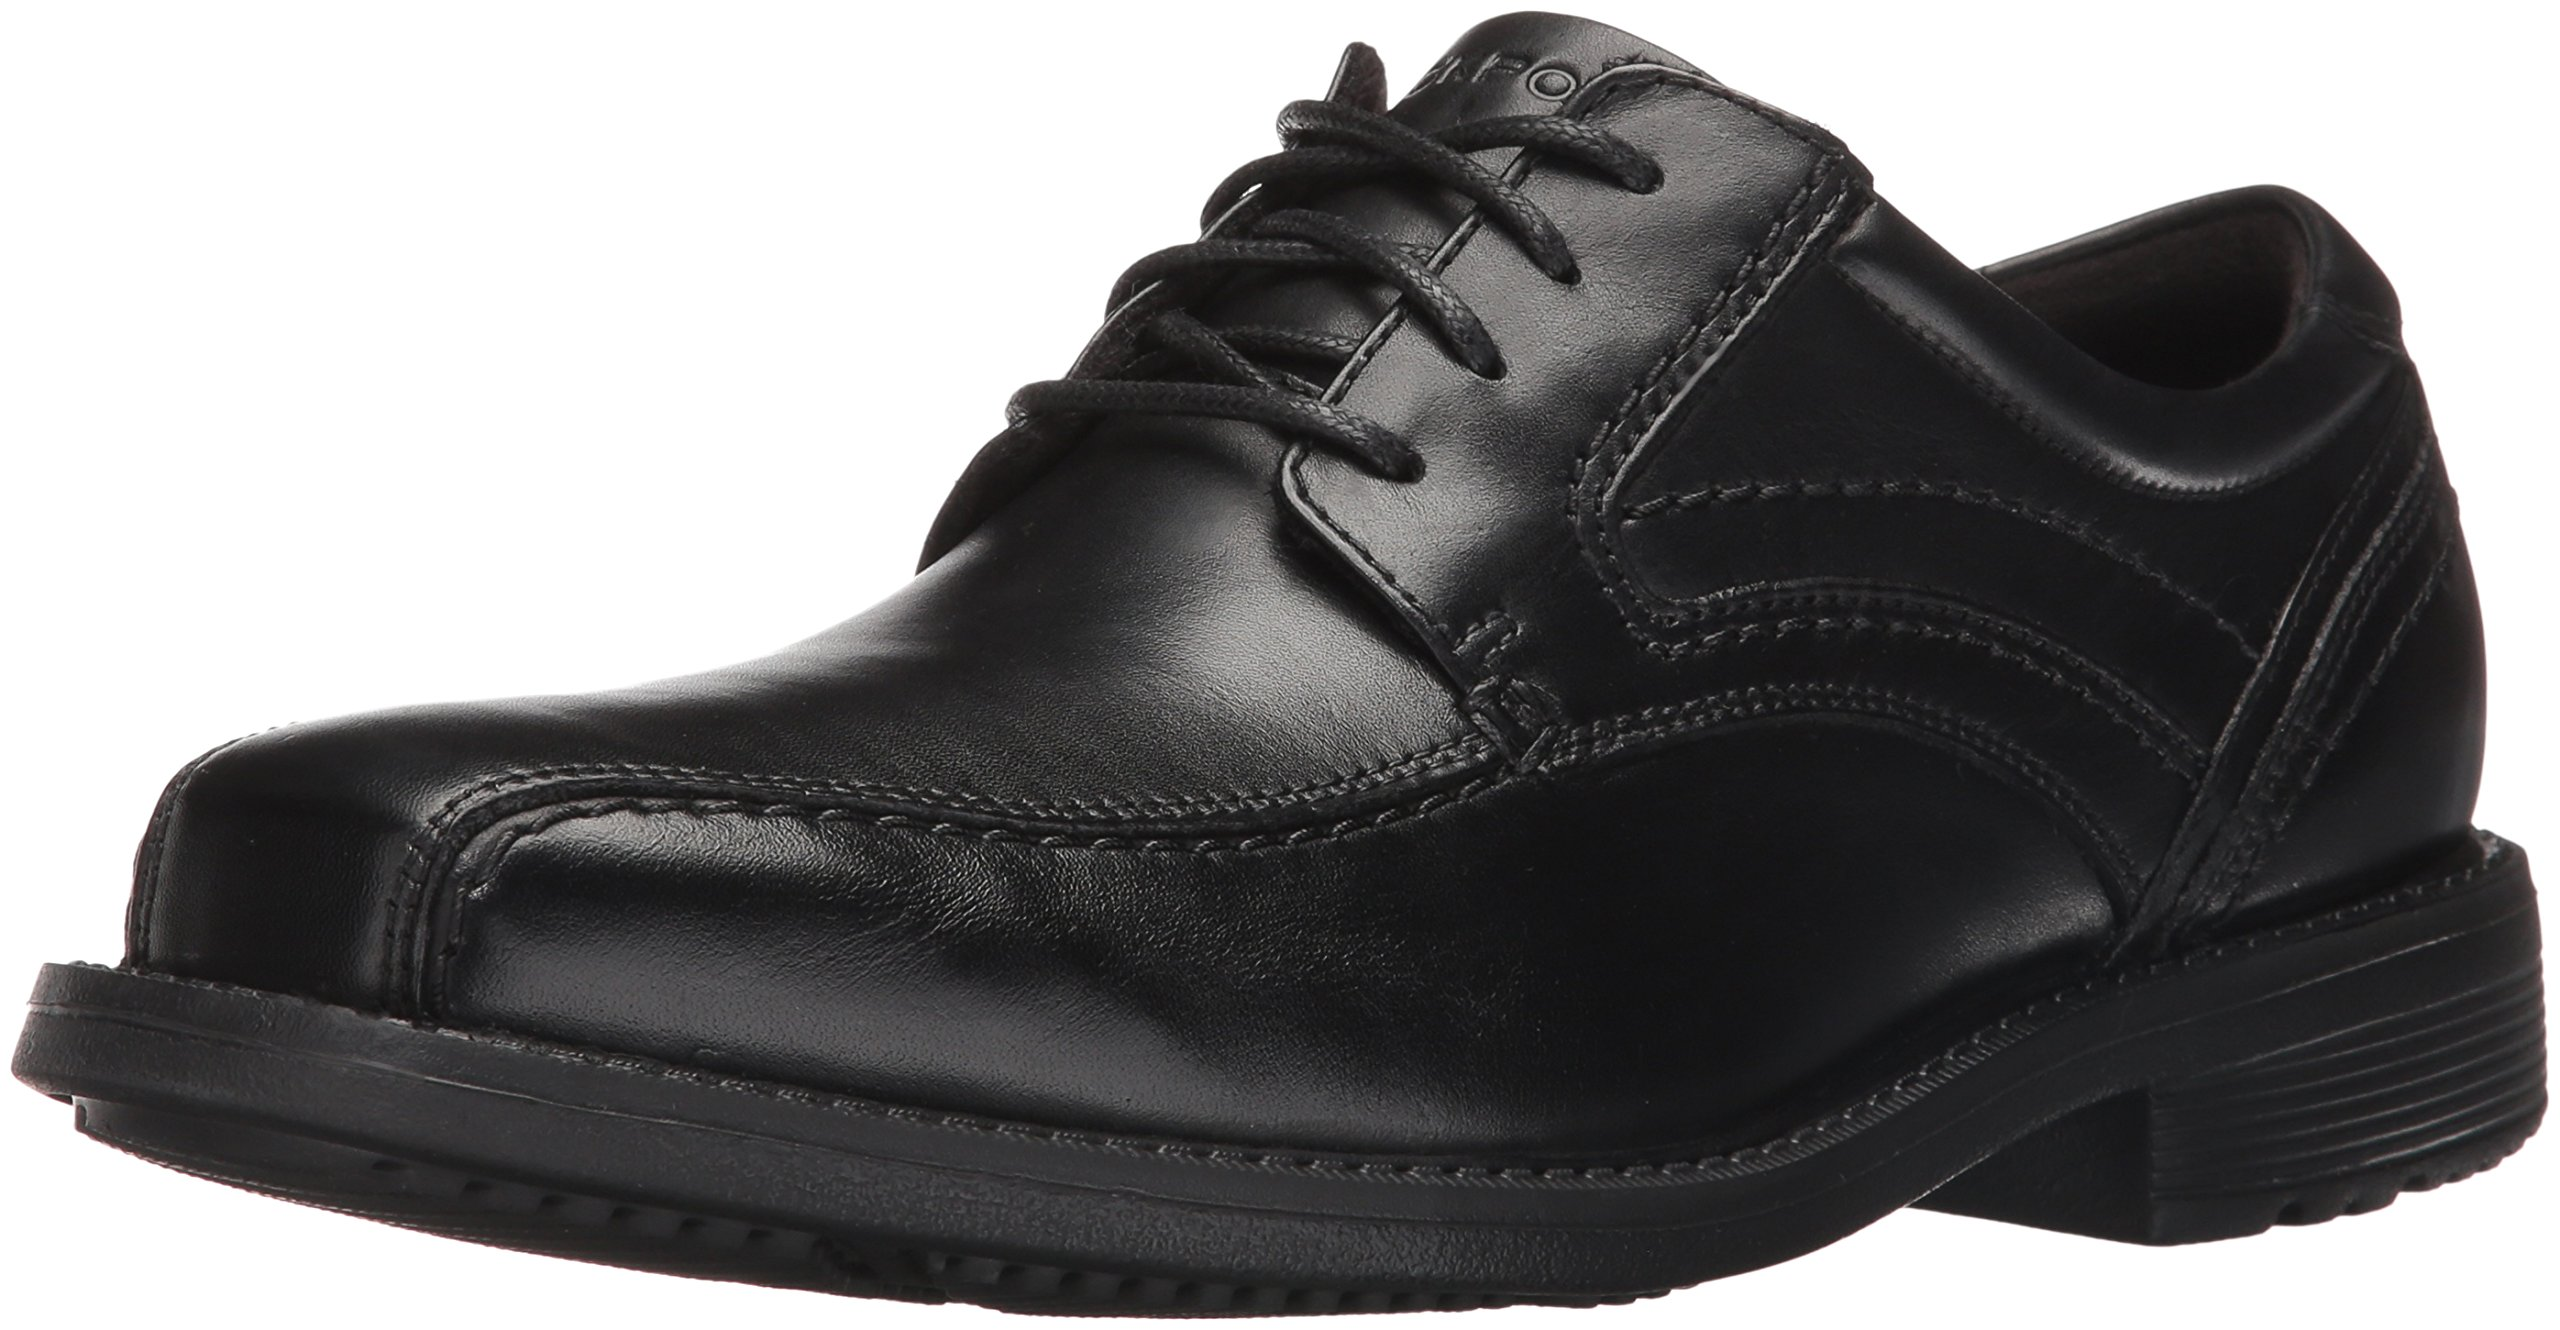 Rockport Men's Classic Tradition Bike Toe Oxford Black, 11 M US, 11 M US